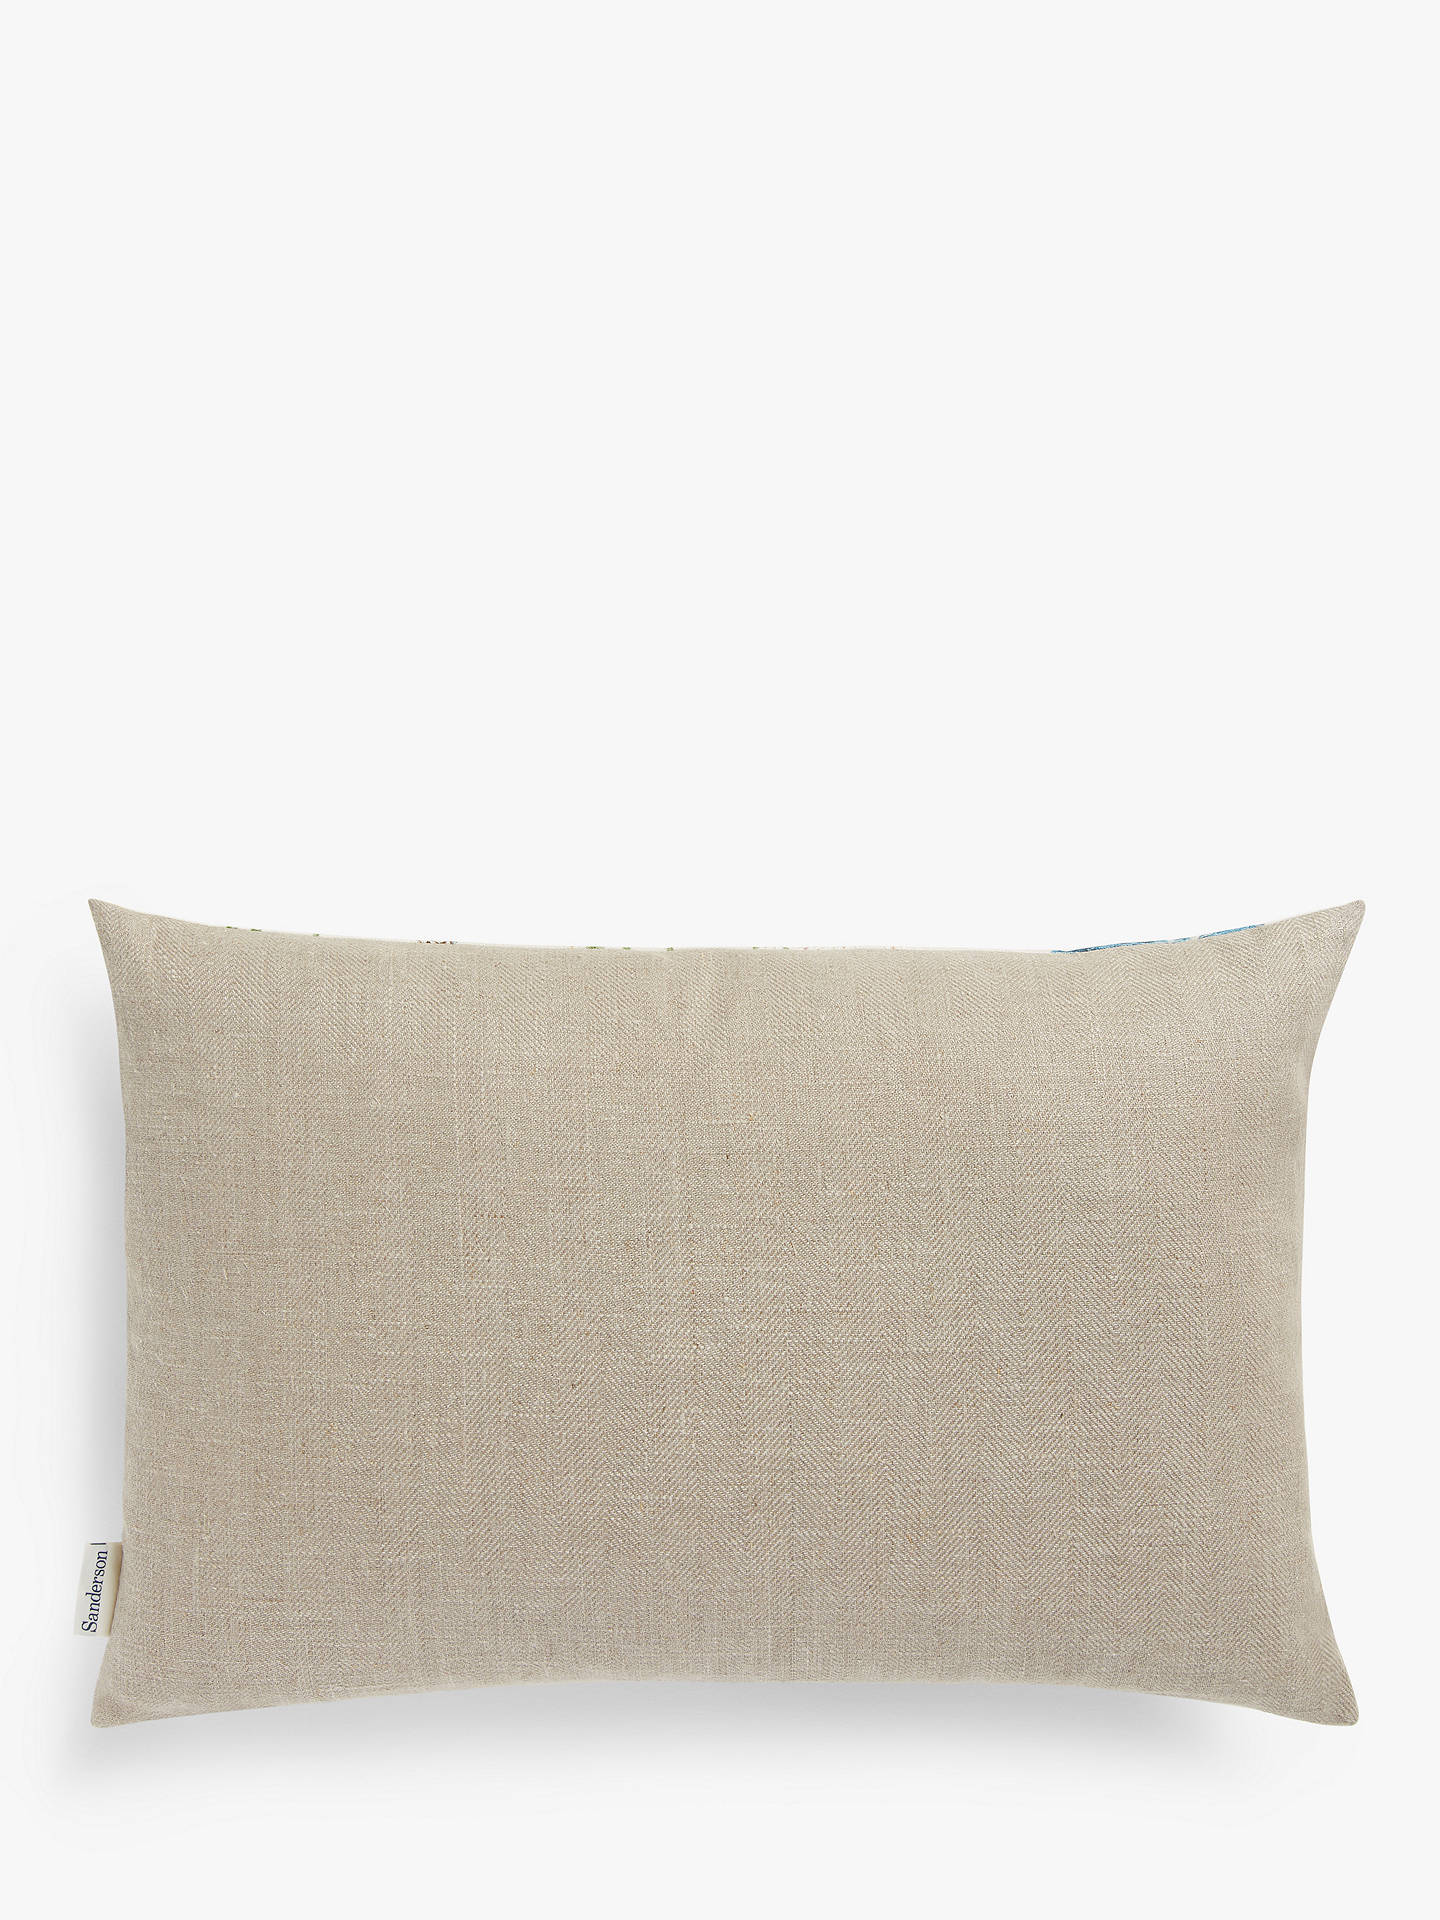 Buy Sanderson National Trust Kingfisher Cushion, Azure / Linen Online at johnlewis.com